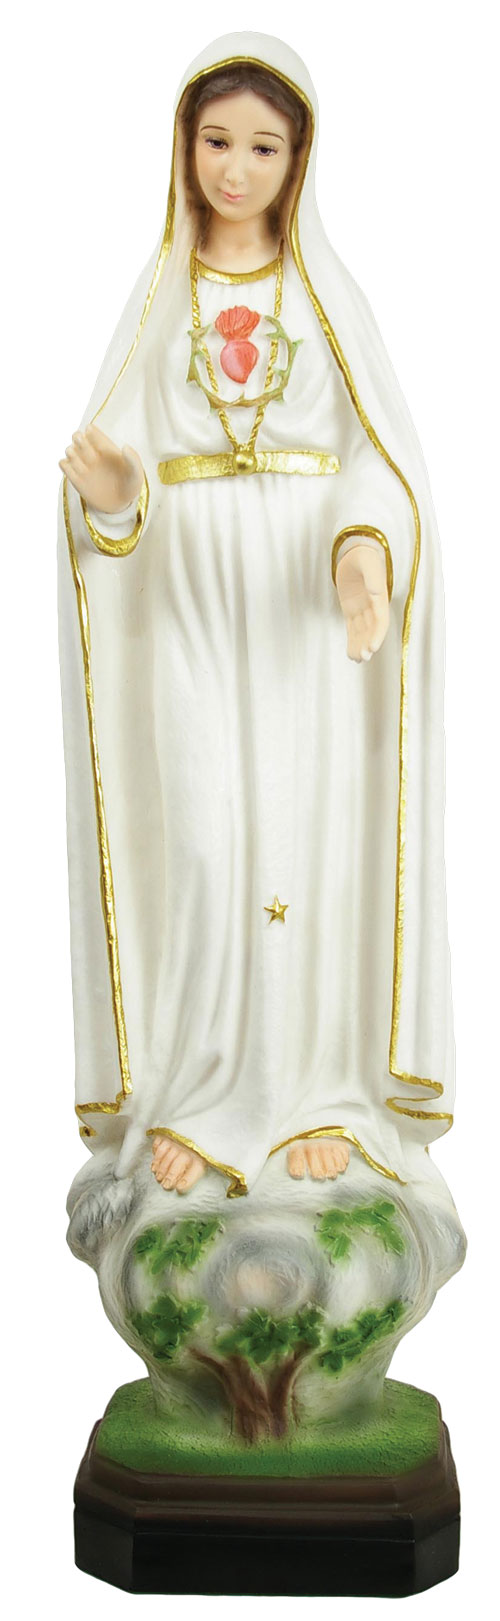 Our Lady of Fatima Statue 27 Inch - Full Color